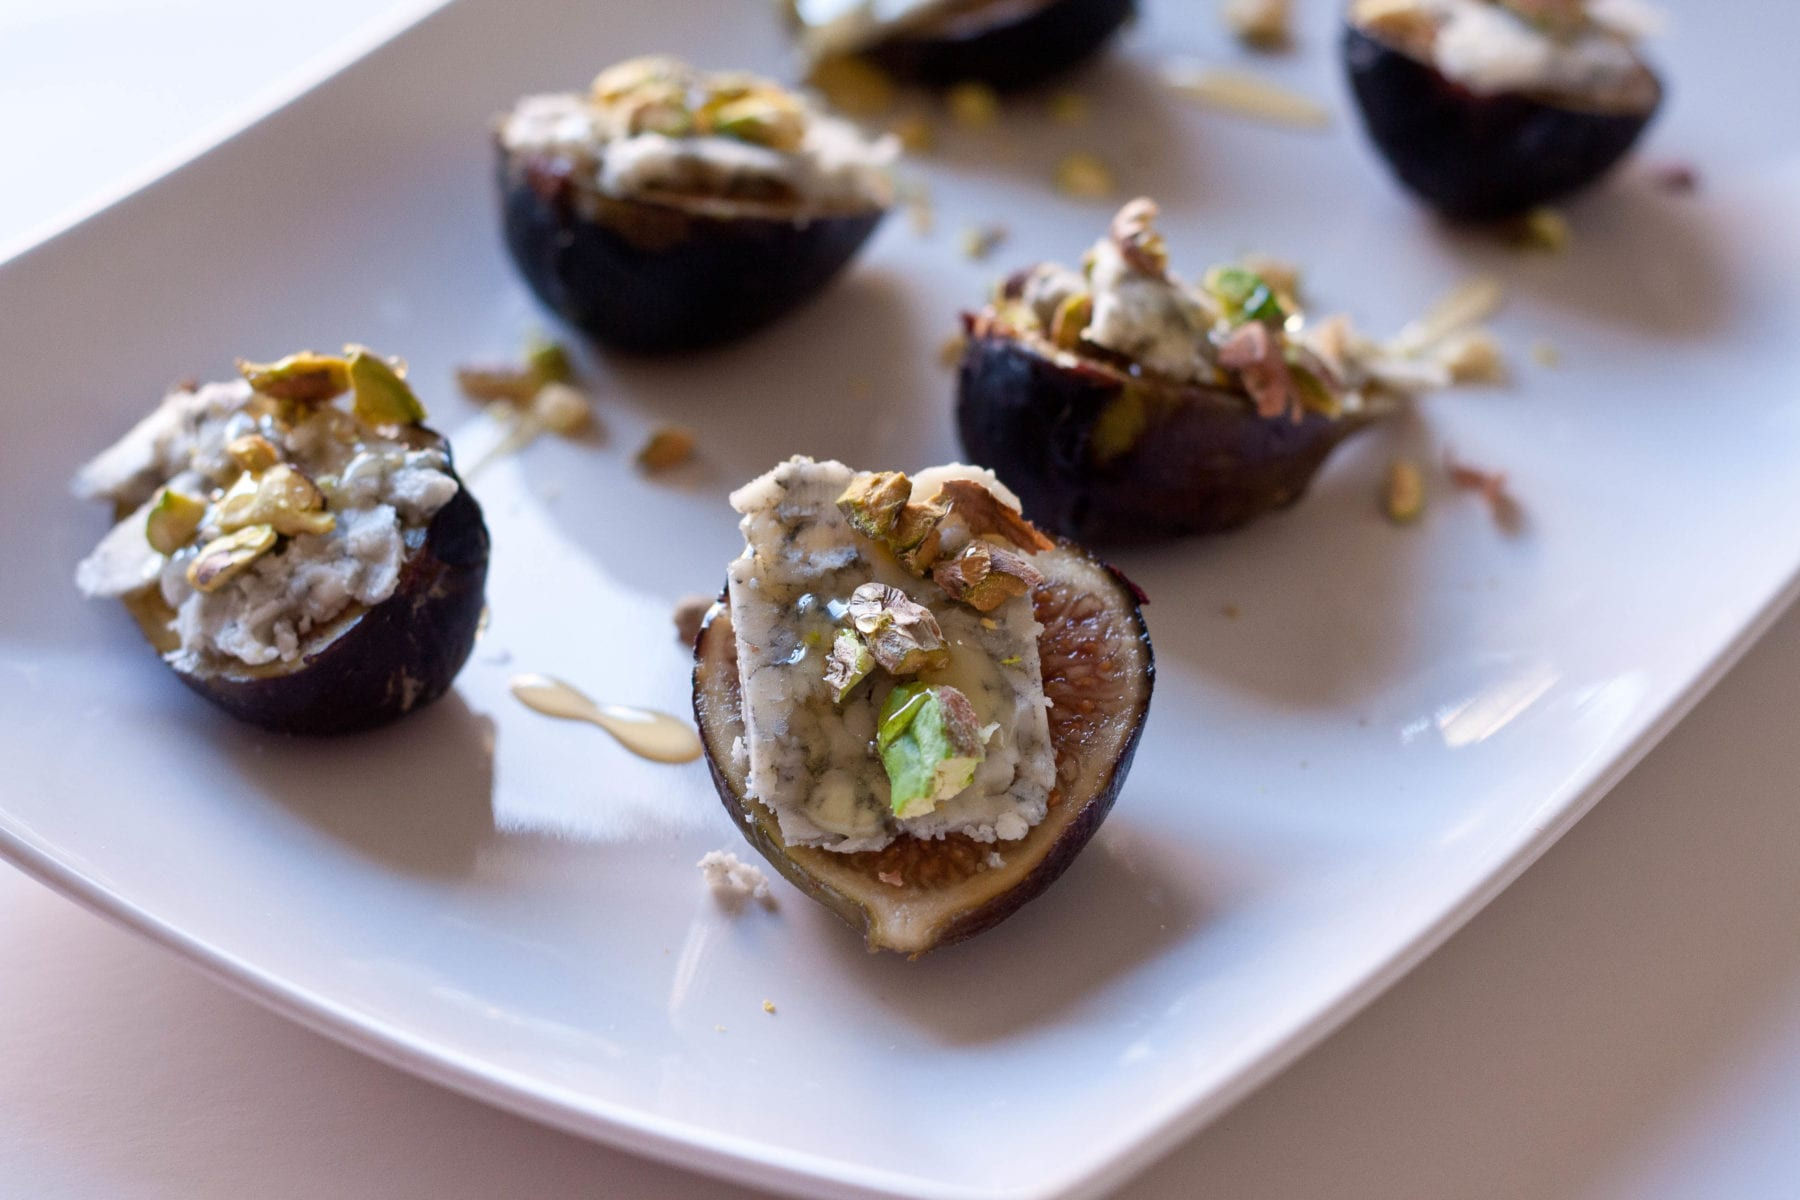 Figs with Blue Cheese, Pistachios and Honey